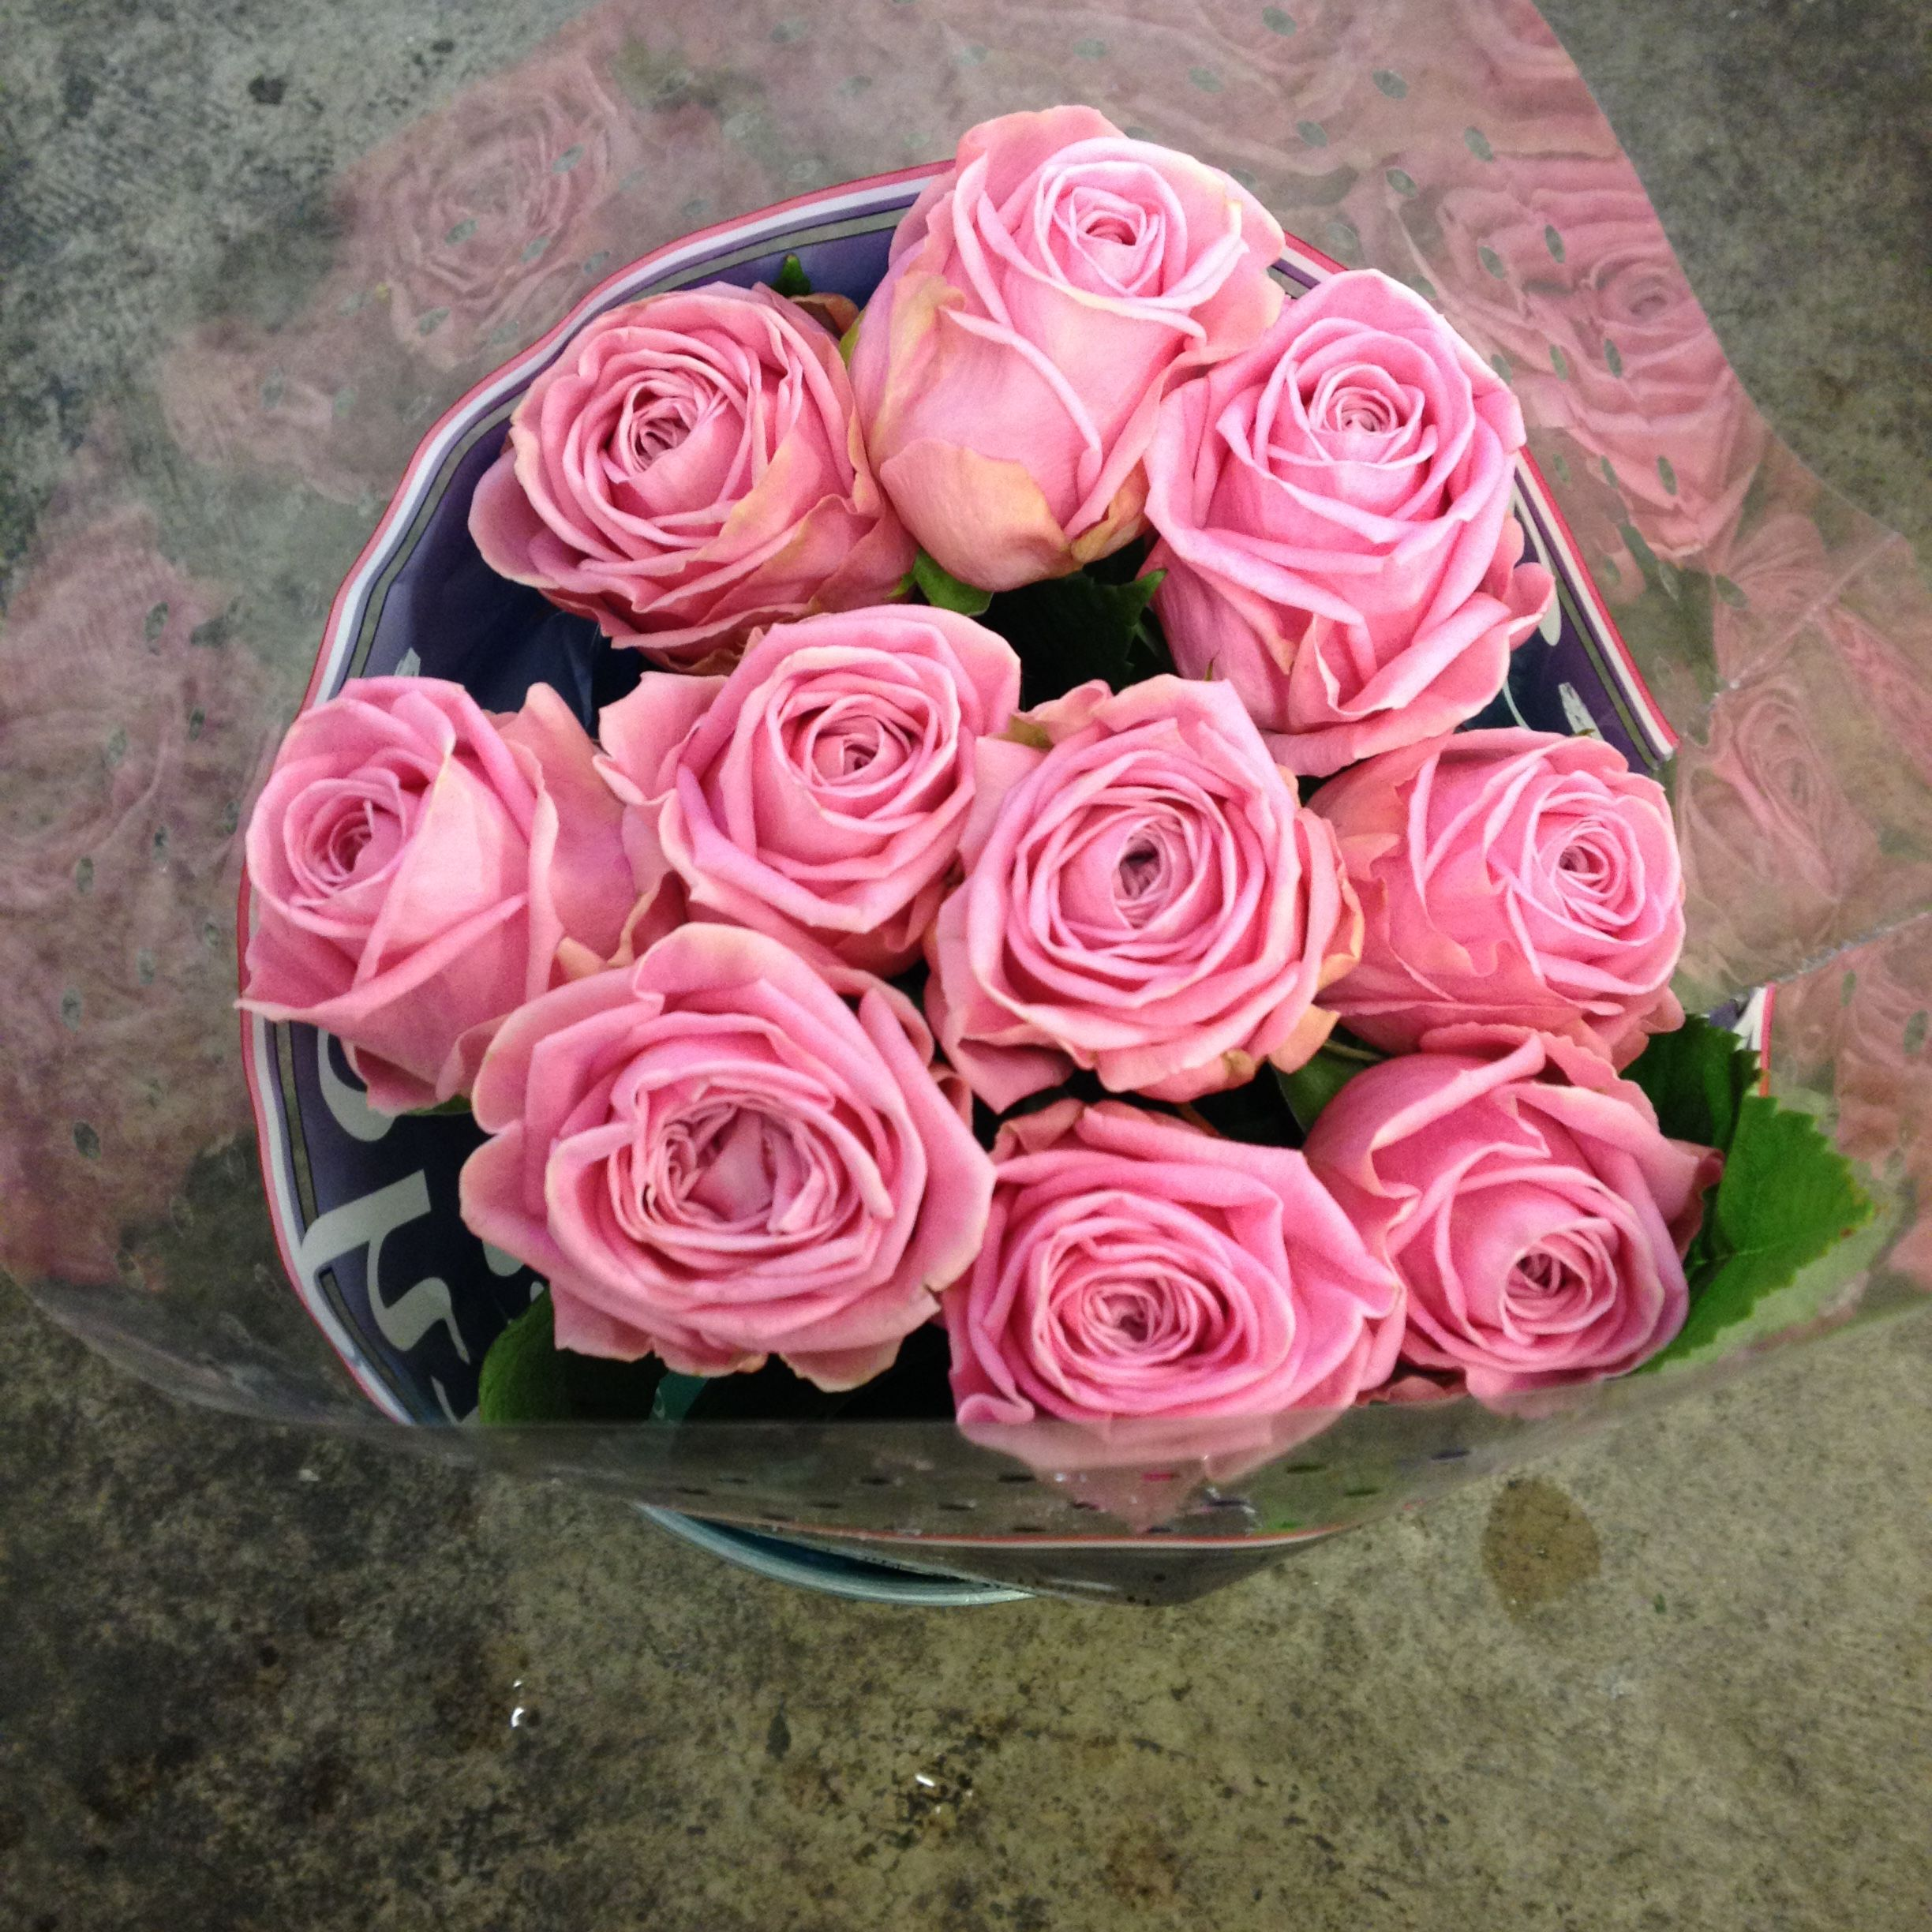 pretty pink rose called u0027heidi u0027 sold in bunches of 10 stems from